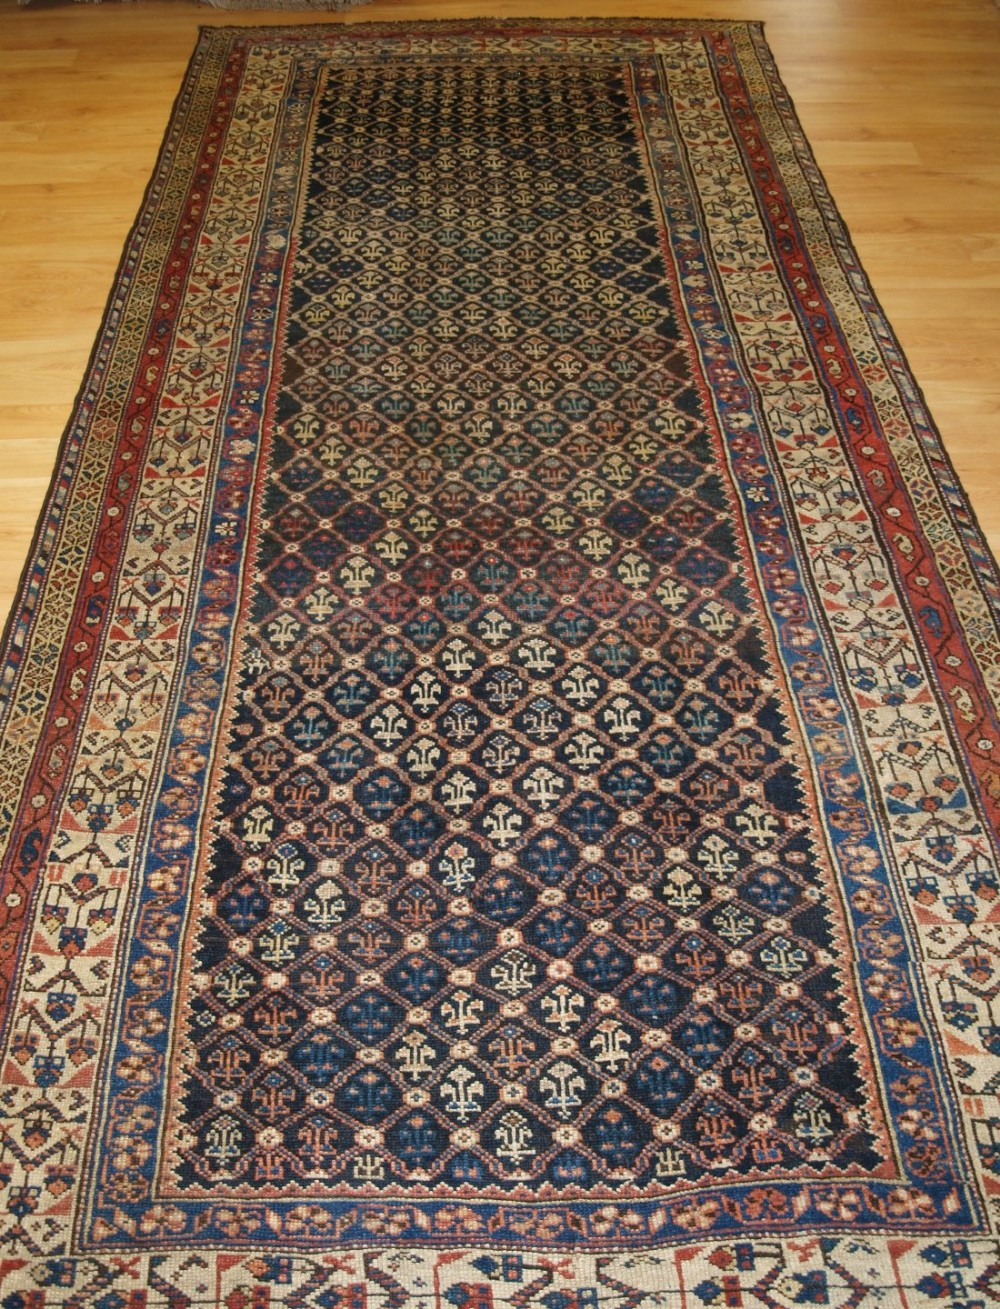 antique north persian kurdish long rug or kelleh fine shrub lattice design circa 1900